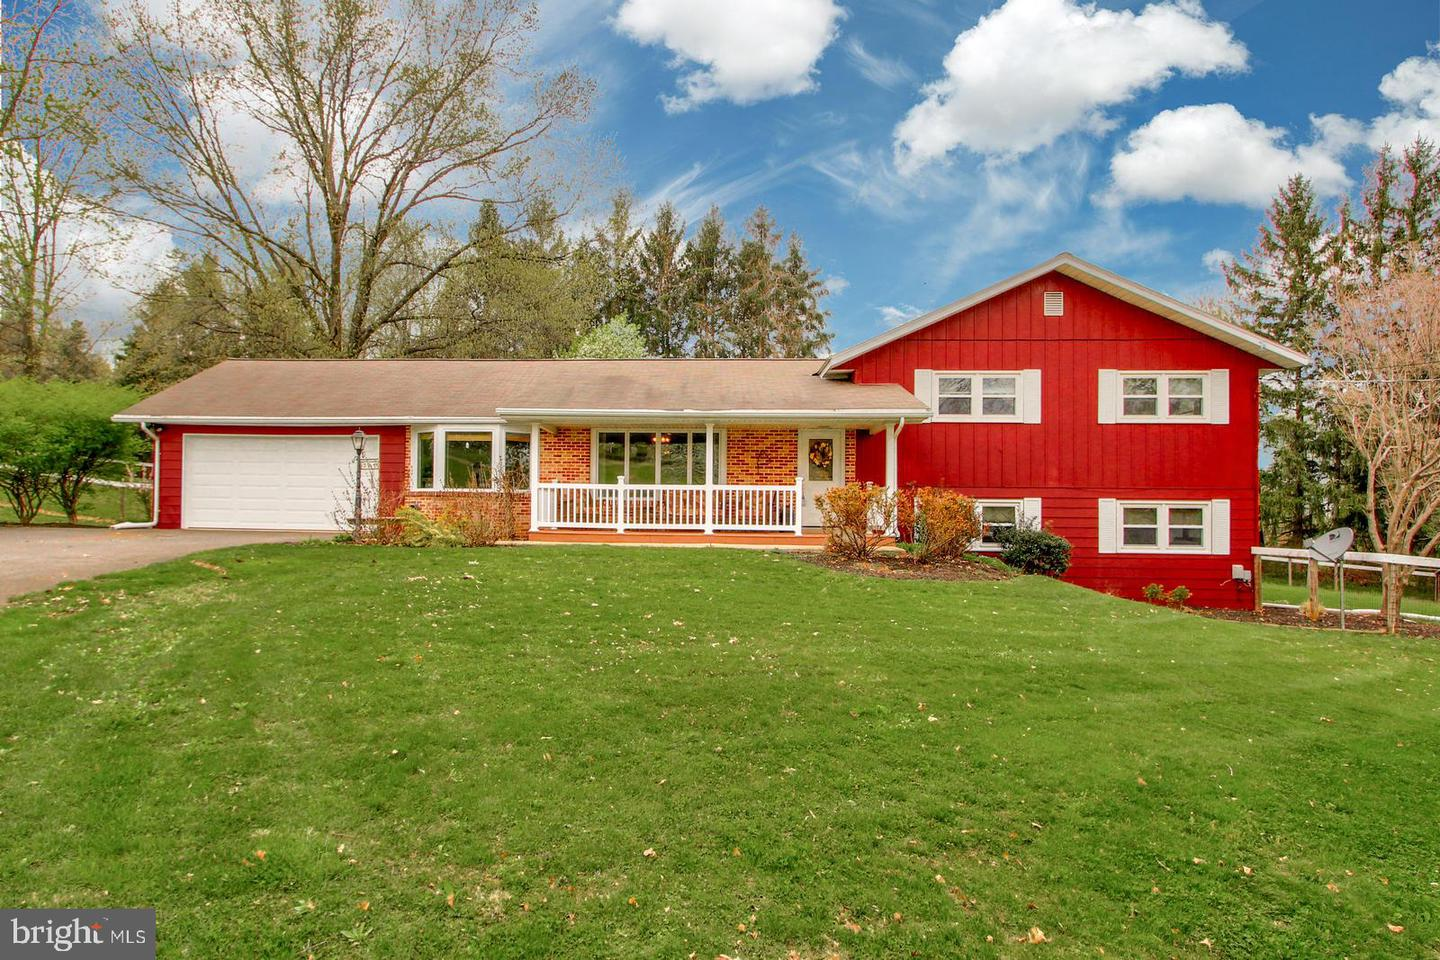 280 Forge Hill Rd Wrightsville Pa 17368 Mls Payk114636